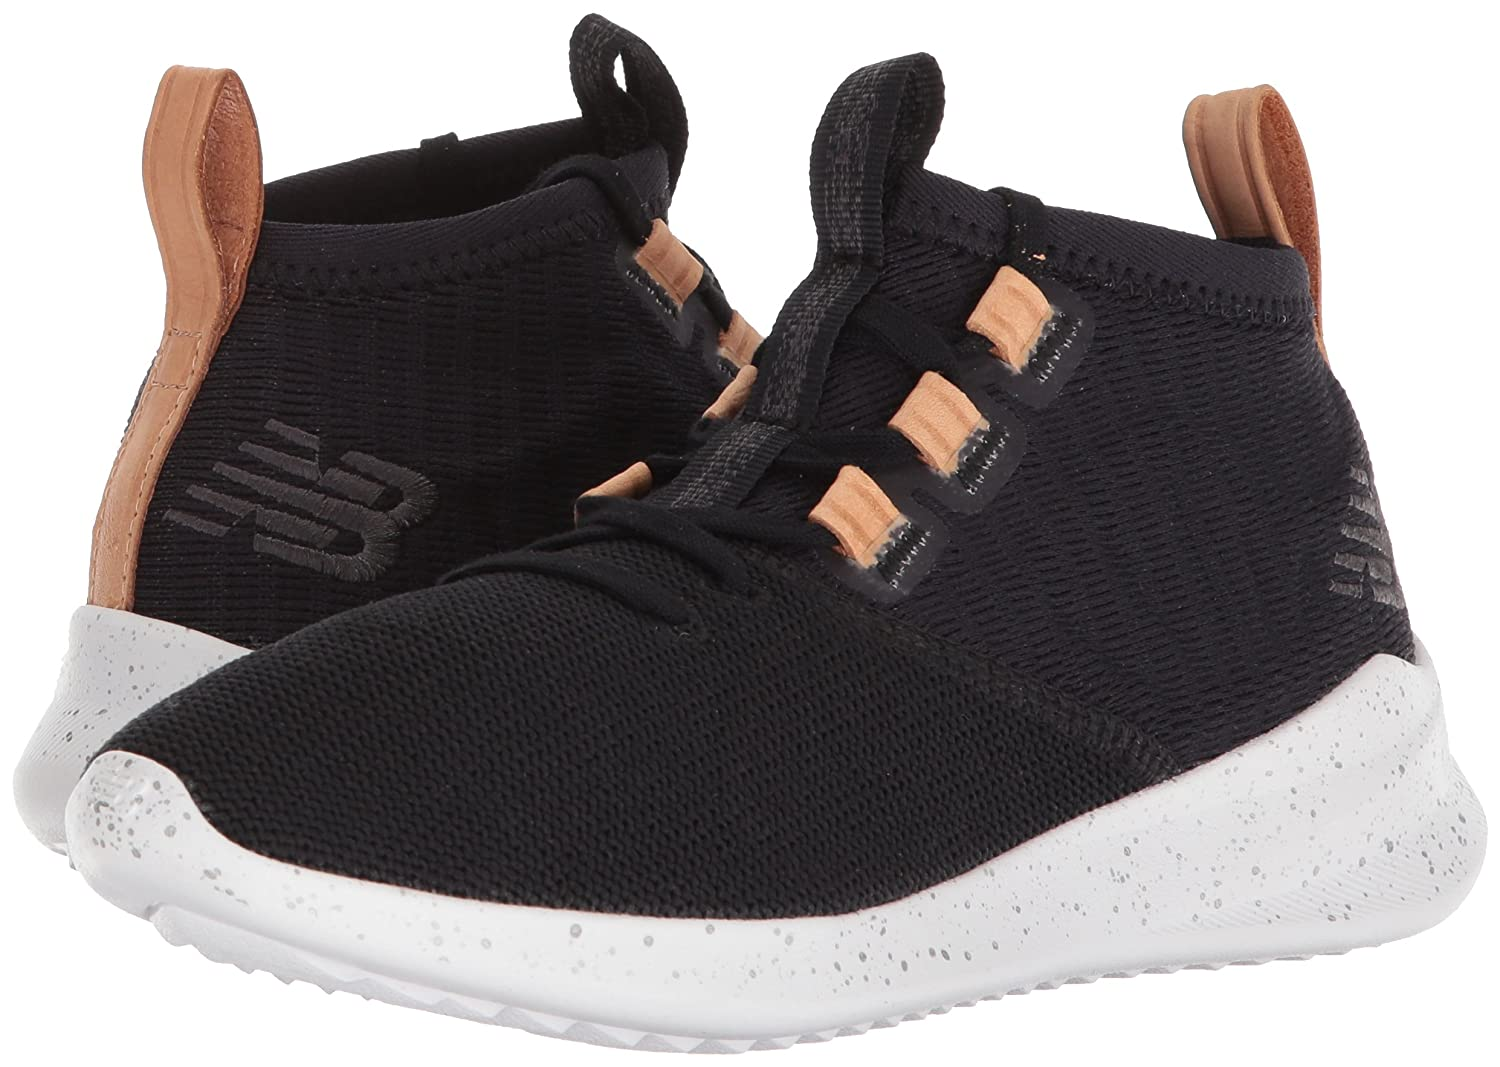 New Balance Shoe Women's Cypher V1 Running Shoe Balance B0751Q8TM5 8 B(M) US|Black/Veg Tan Leather 8e2a03